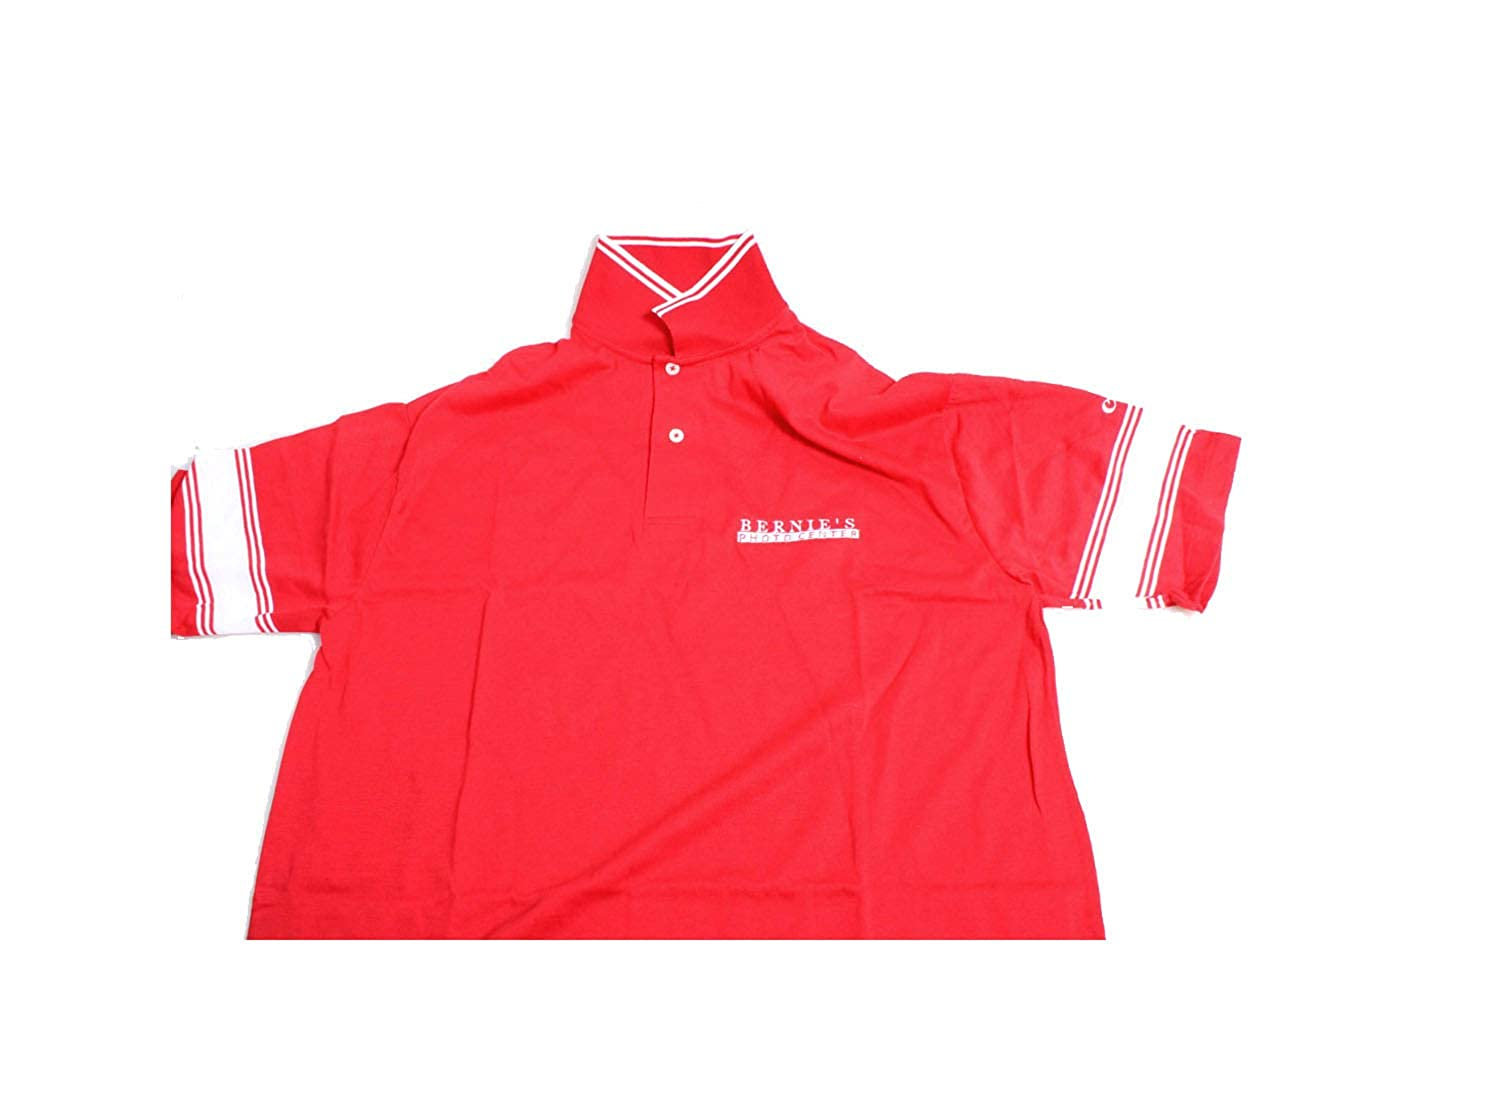 Canon Polo Shirt////Short Sleeve////Red Polo Shirt////Large////Business Shirt